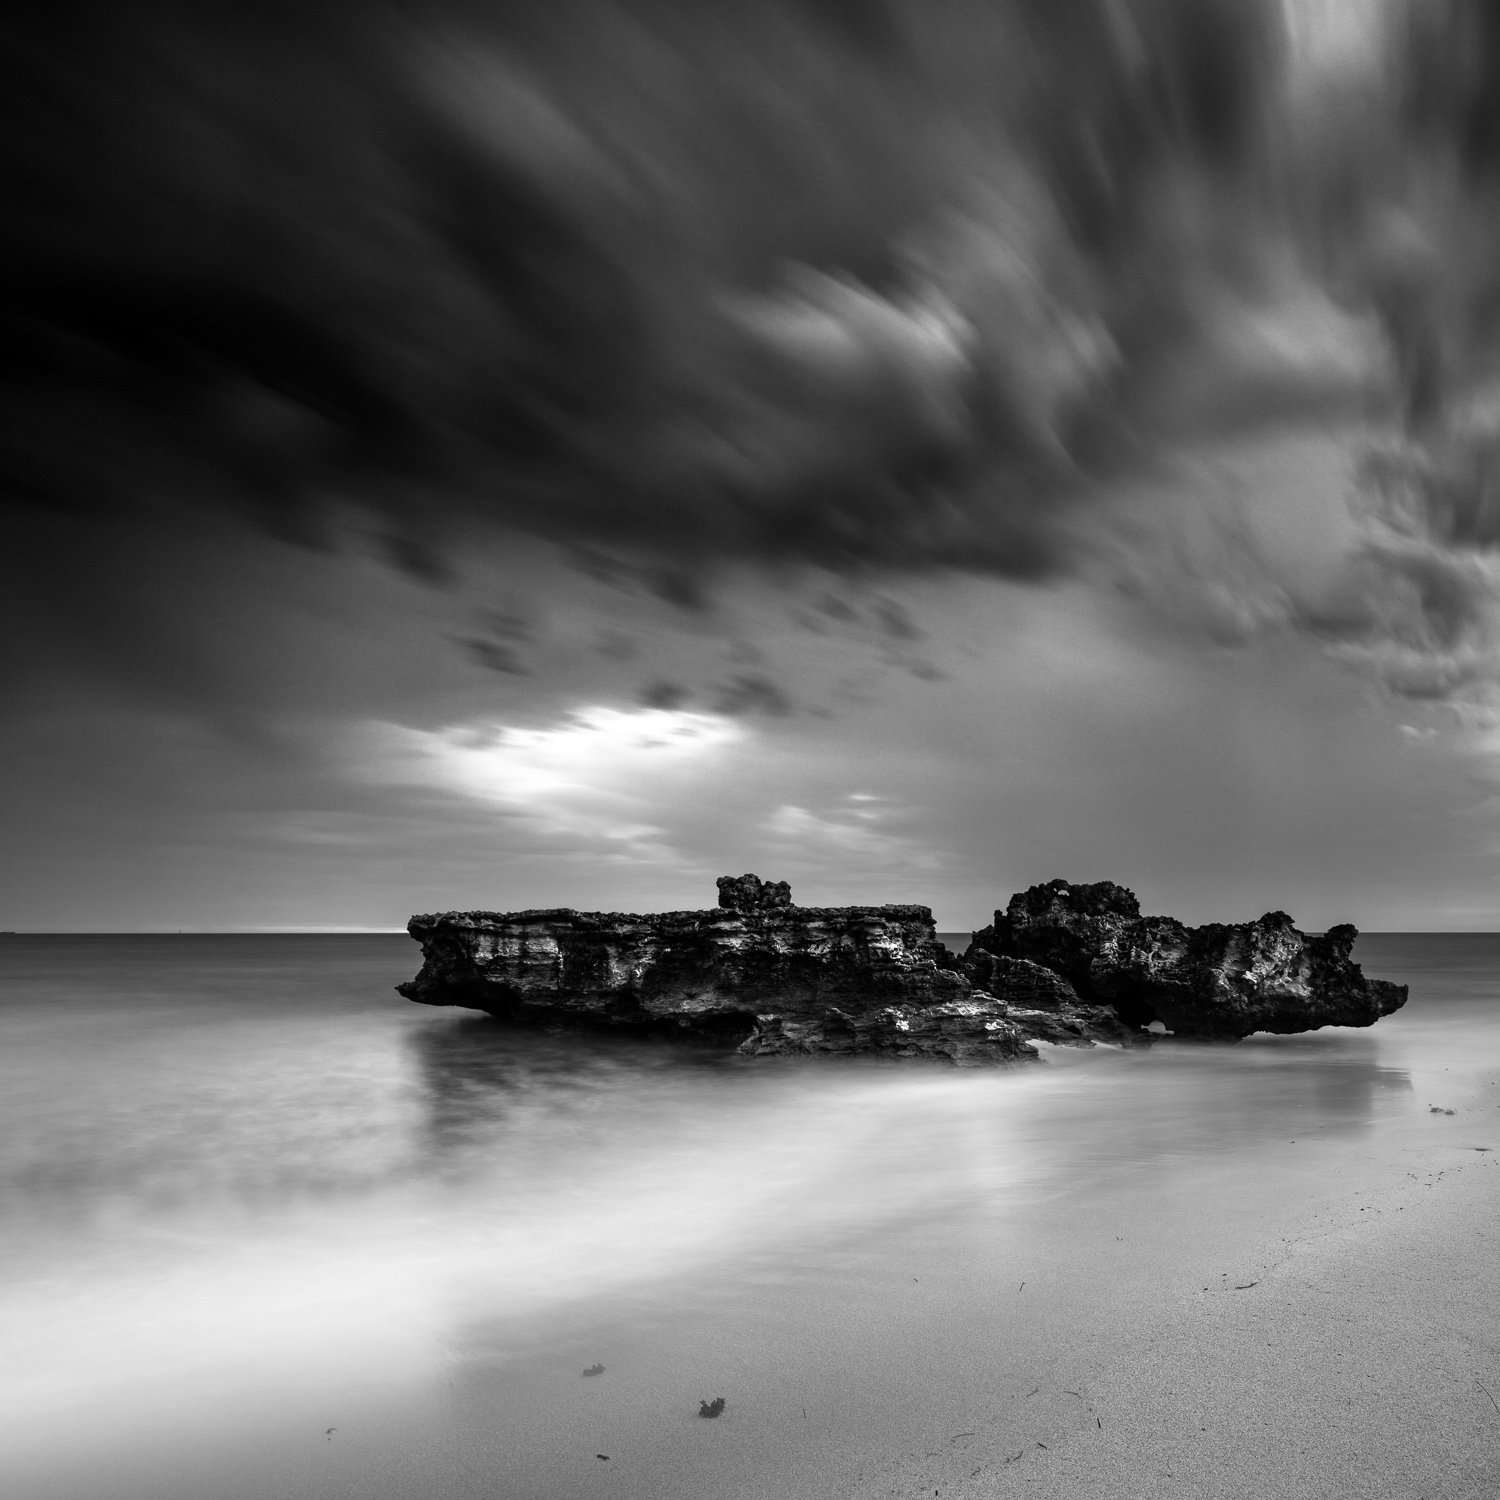 Dispersing_North-Trigg-Beach_Trigg_Perth_WA_Black and White